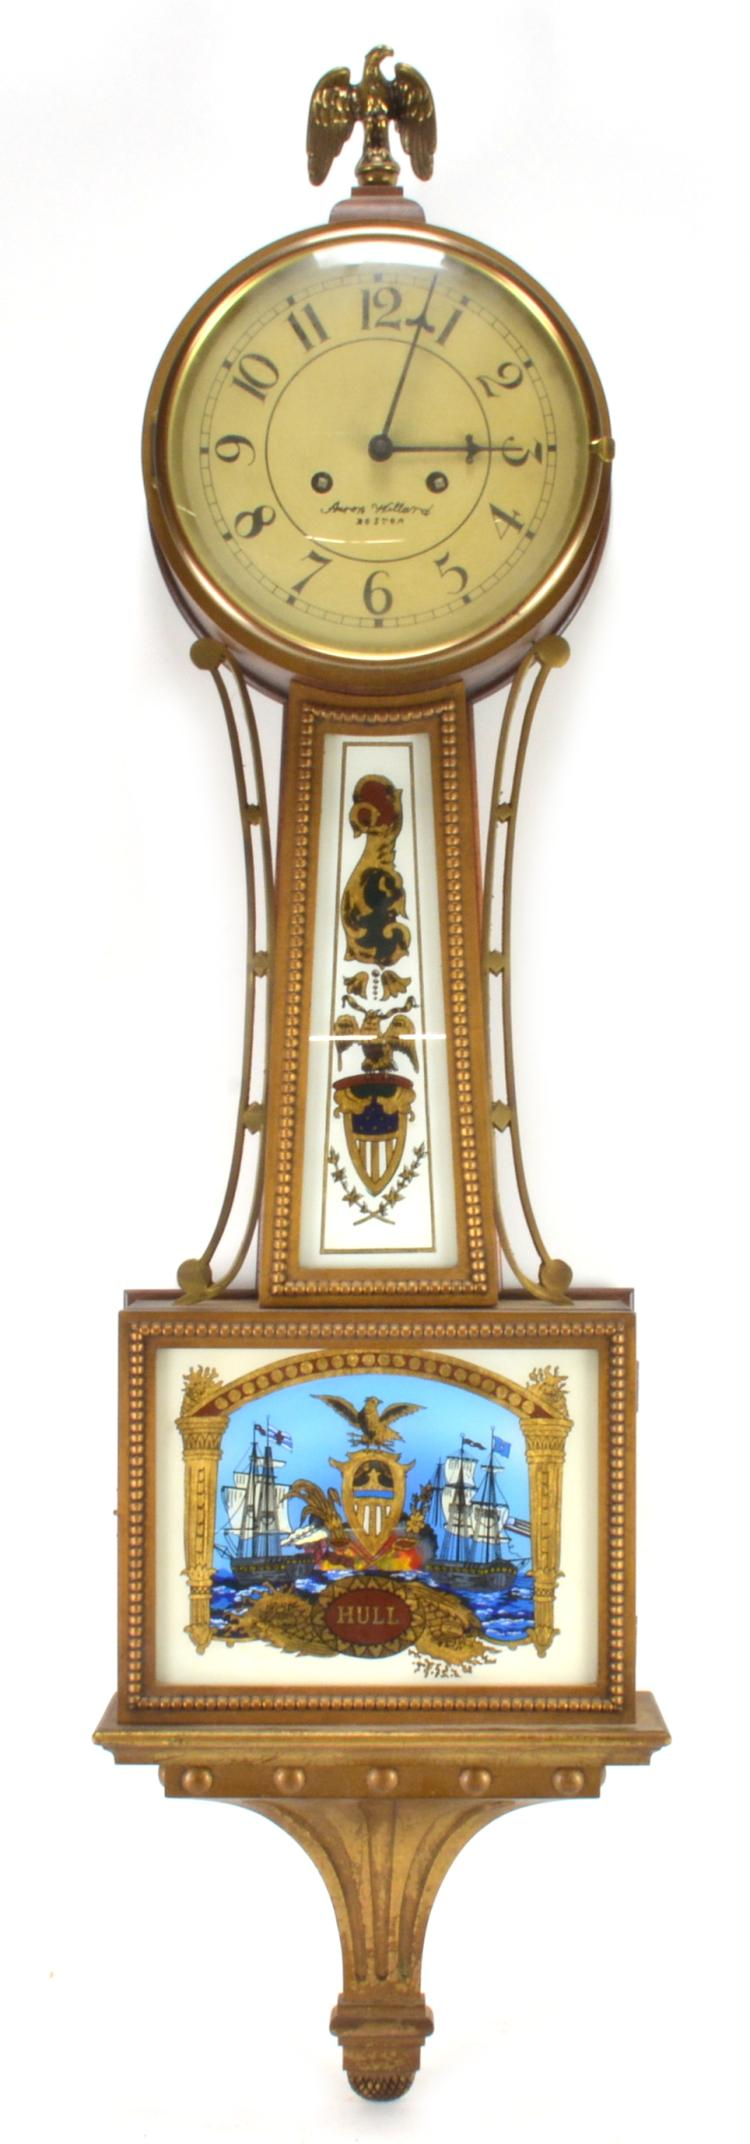 Lot 136: Aaron Willard Banjo Clock Henry Ford Museum Edition